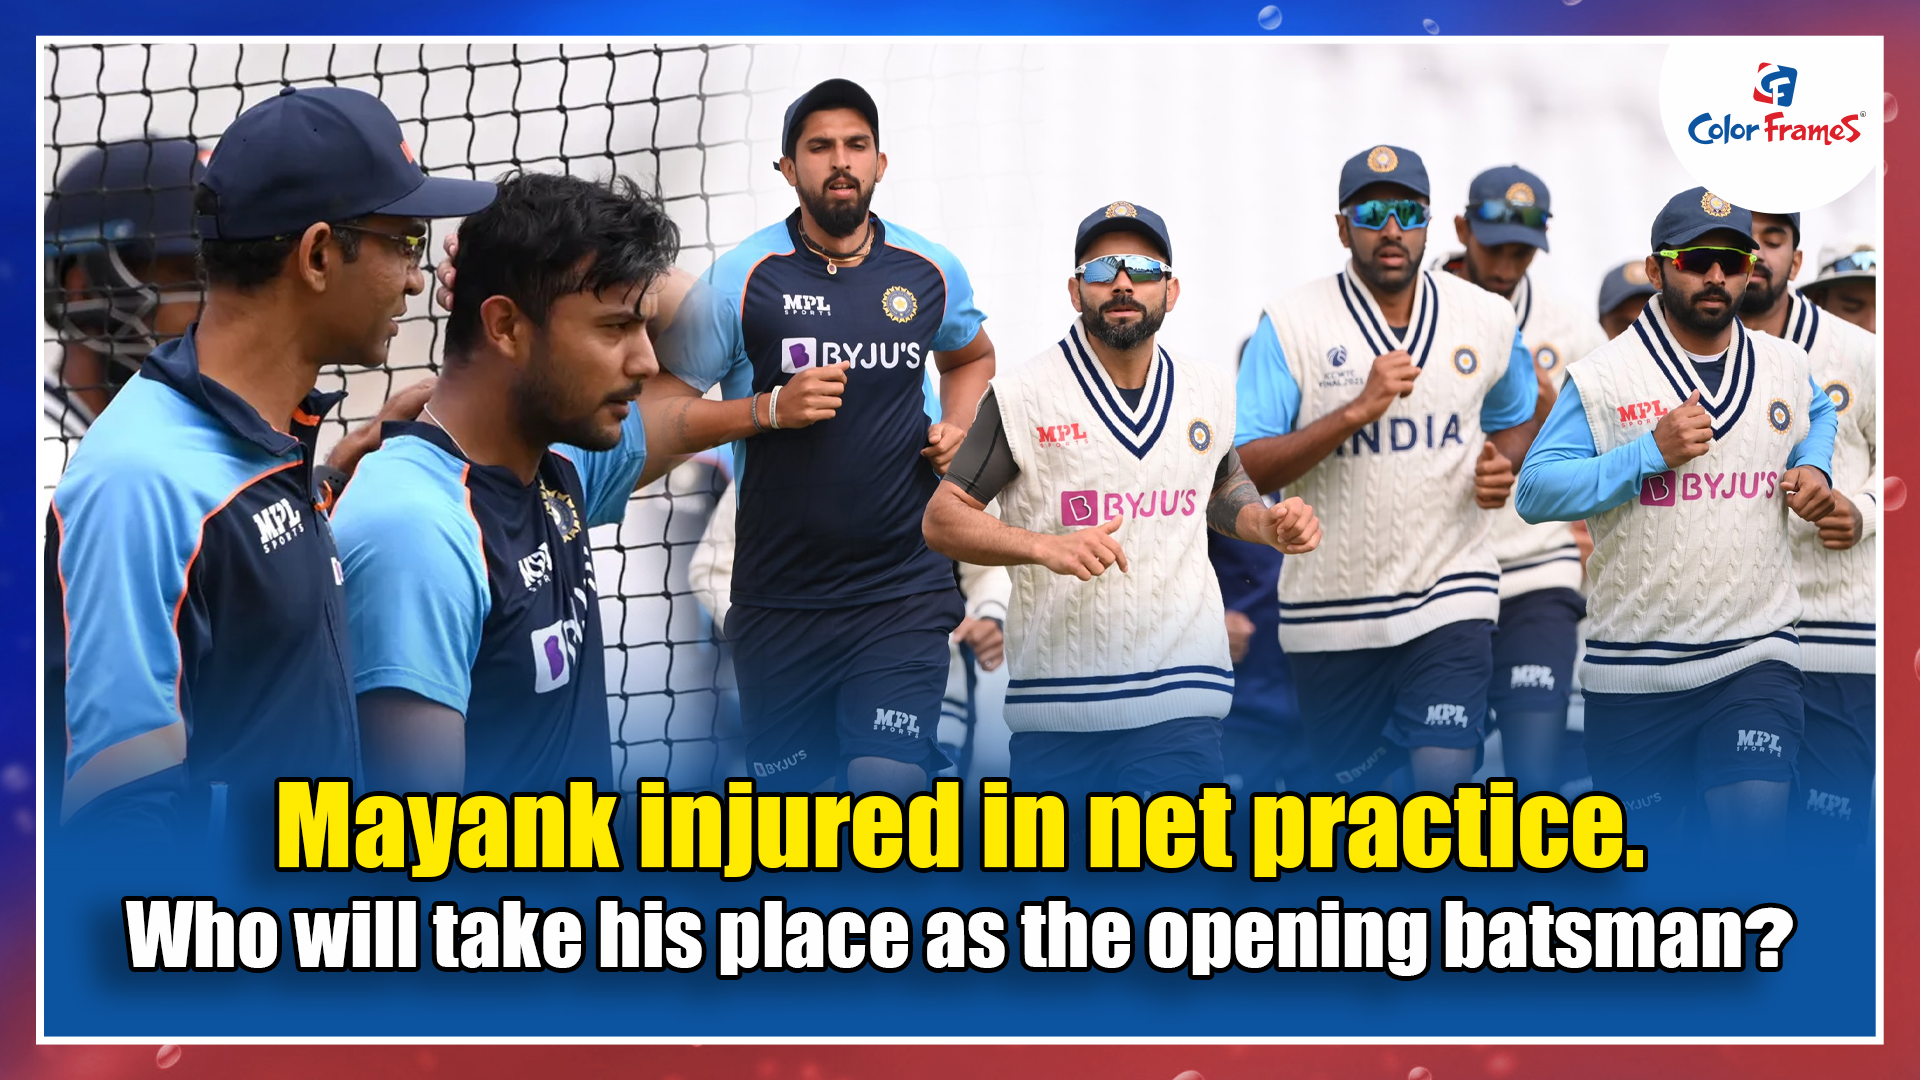 Mayank injured in net practice. Who will take his place as the opening batsman?